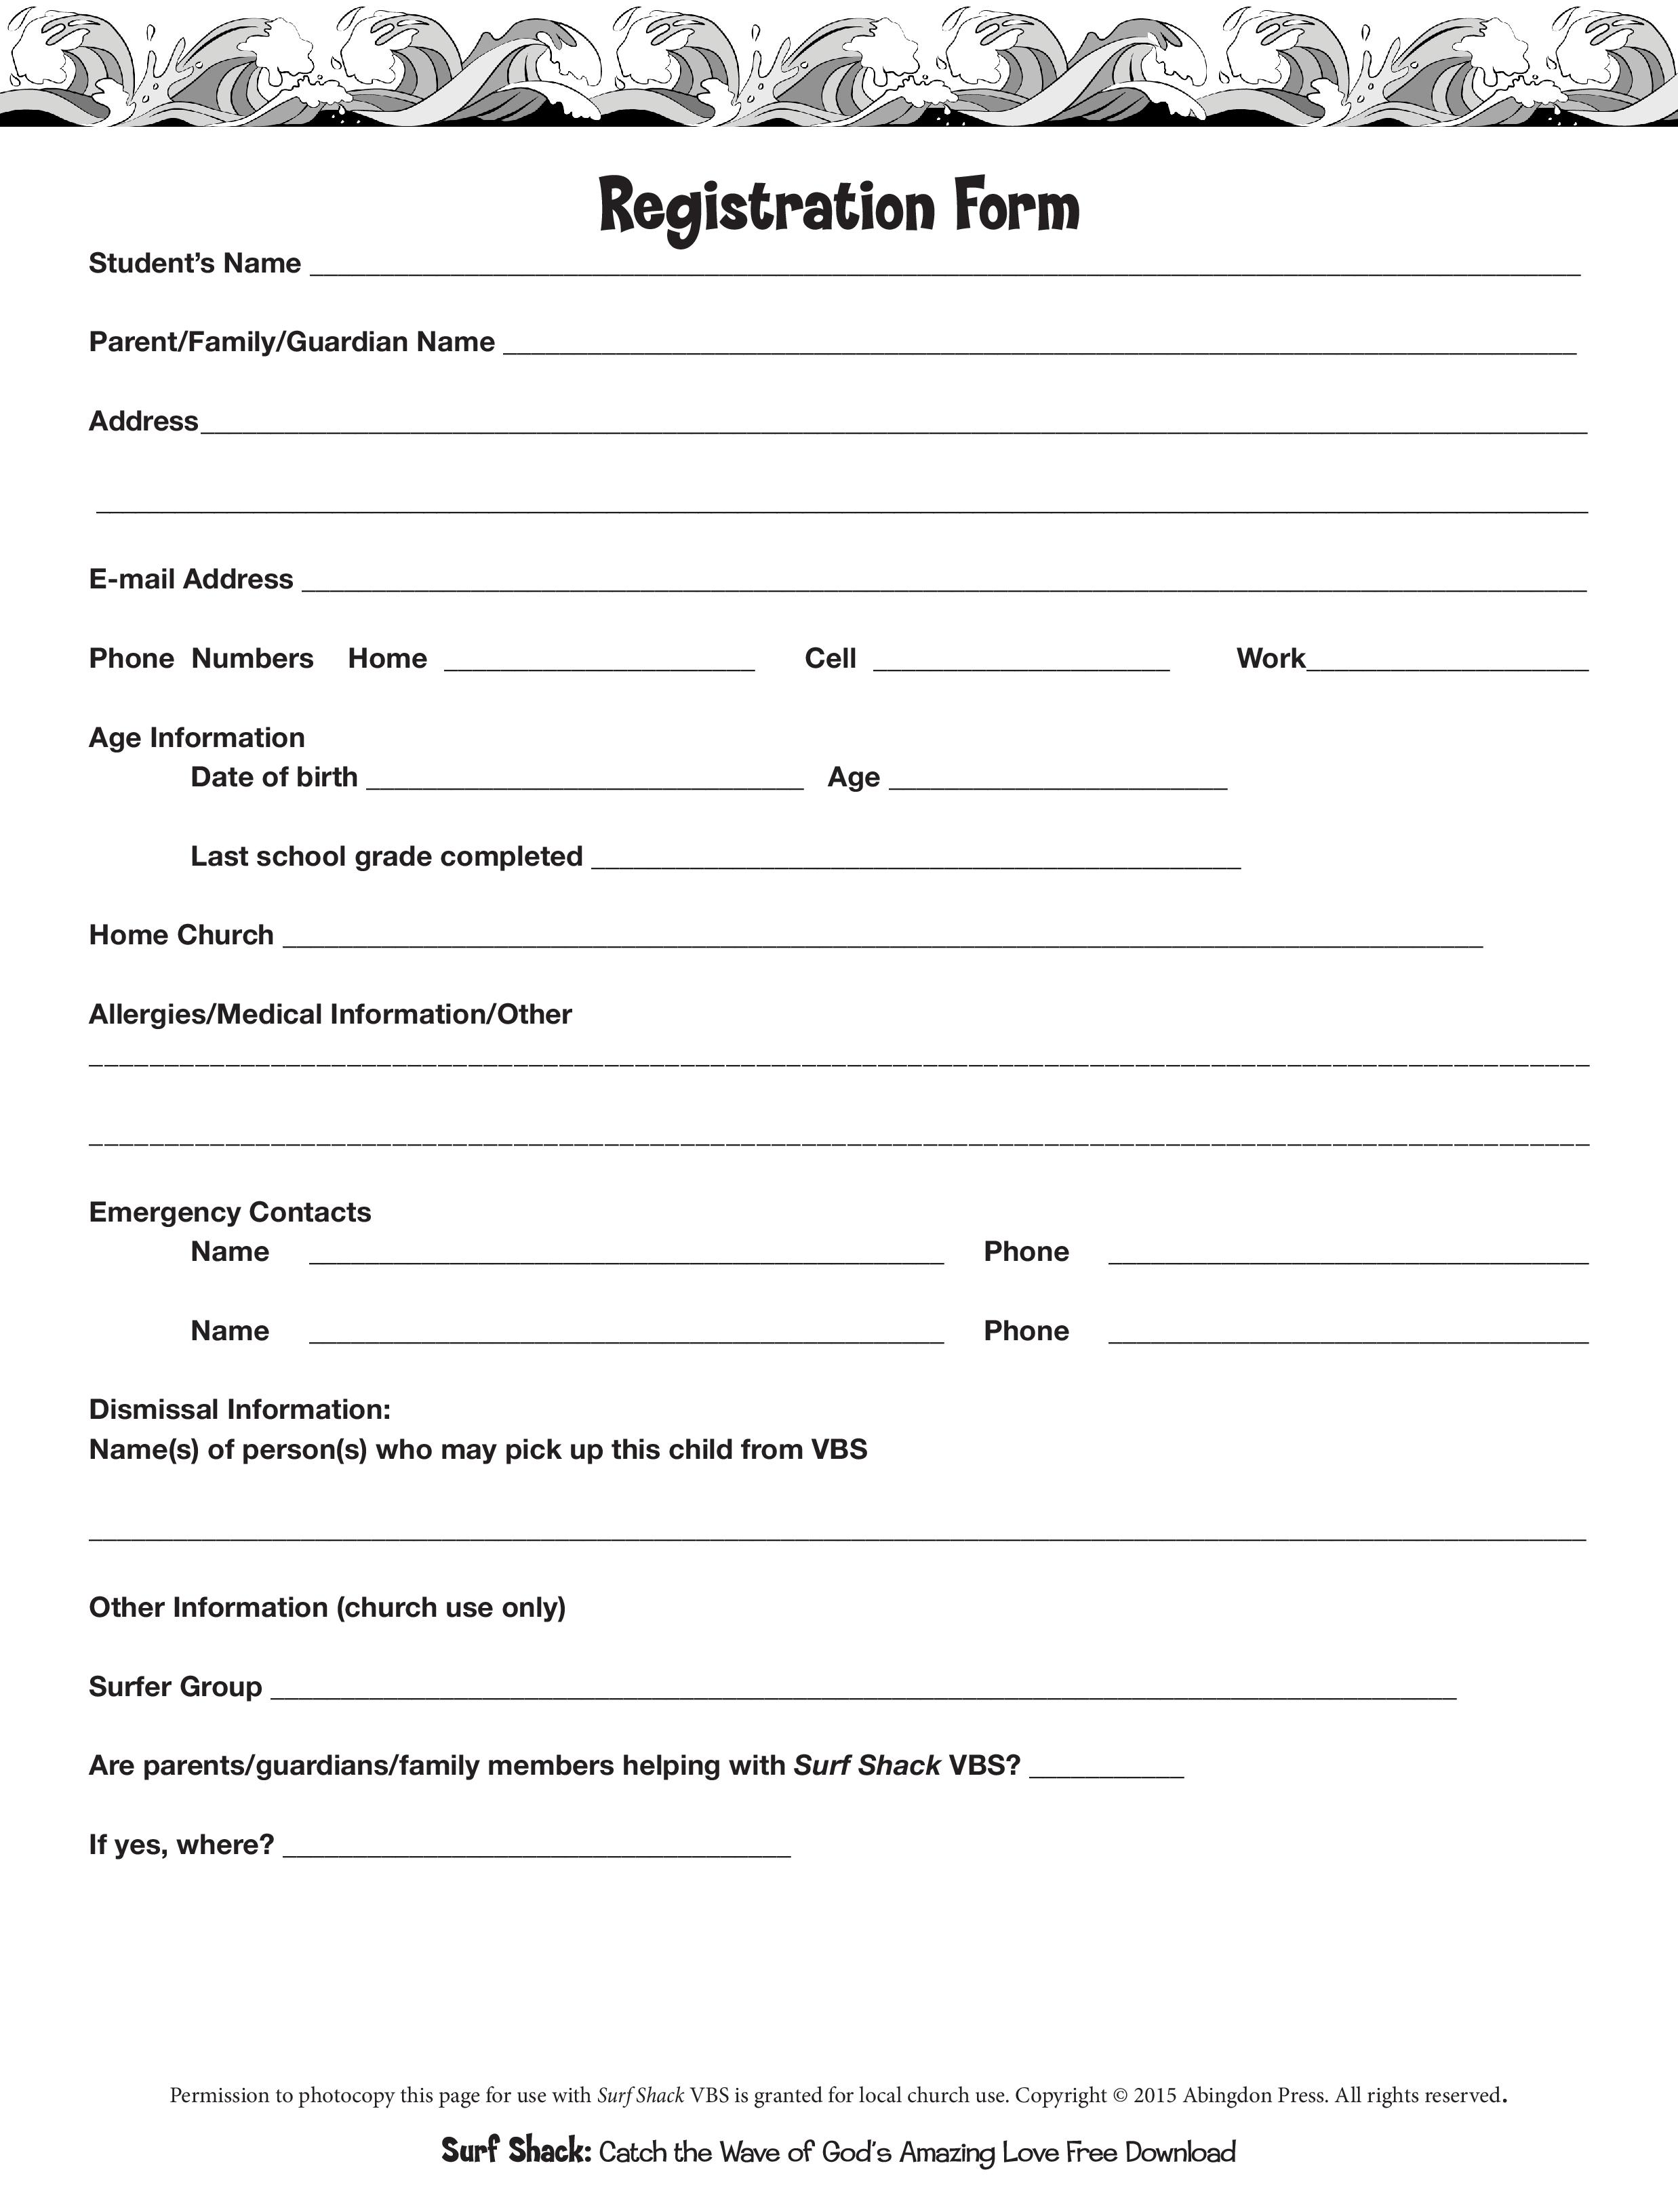 REGISTRATION FORM FOR SURF SHACK VBS (Click to download full version0